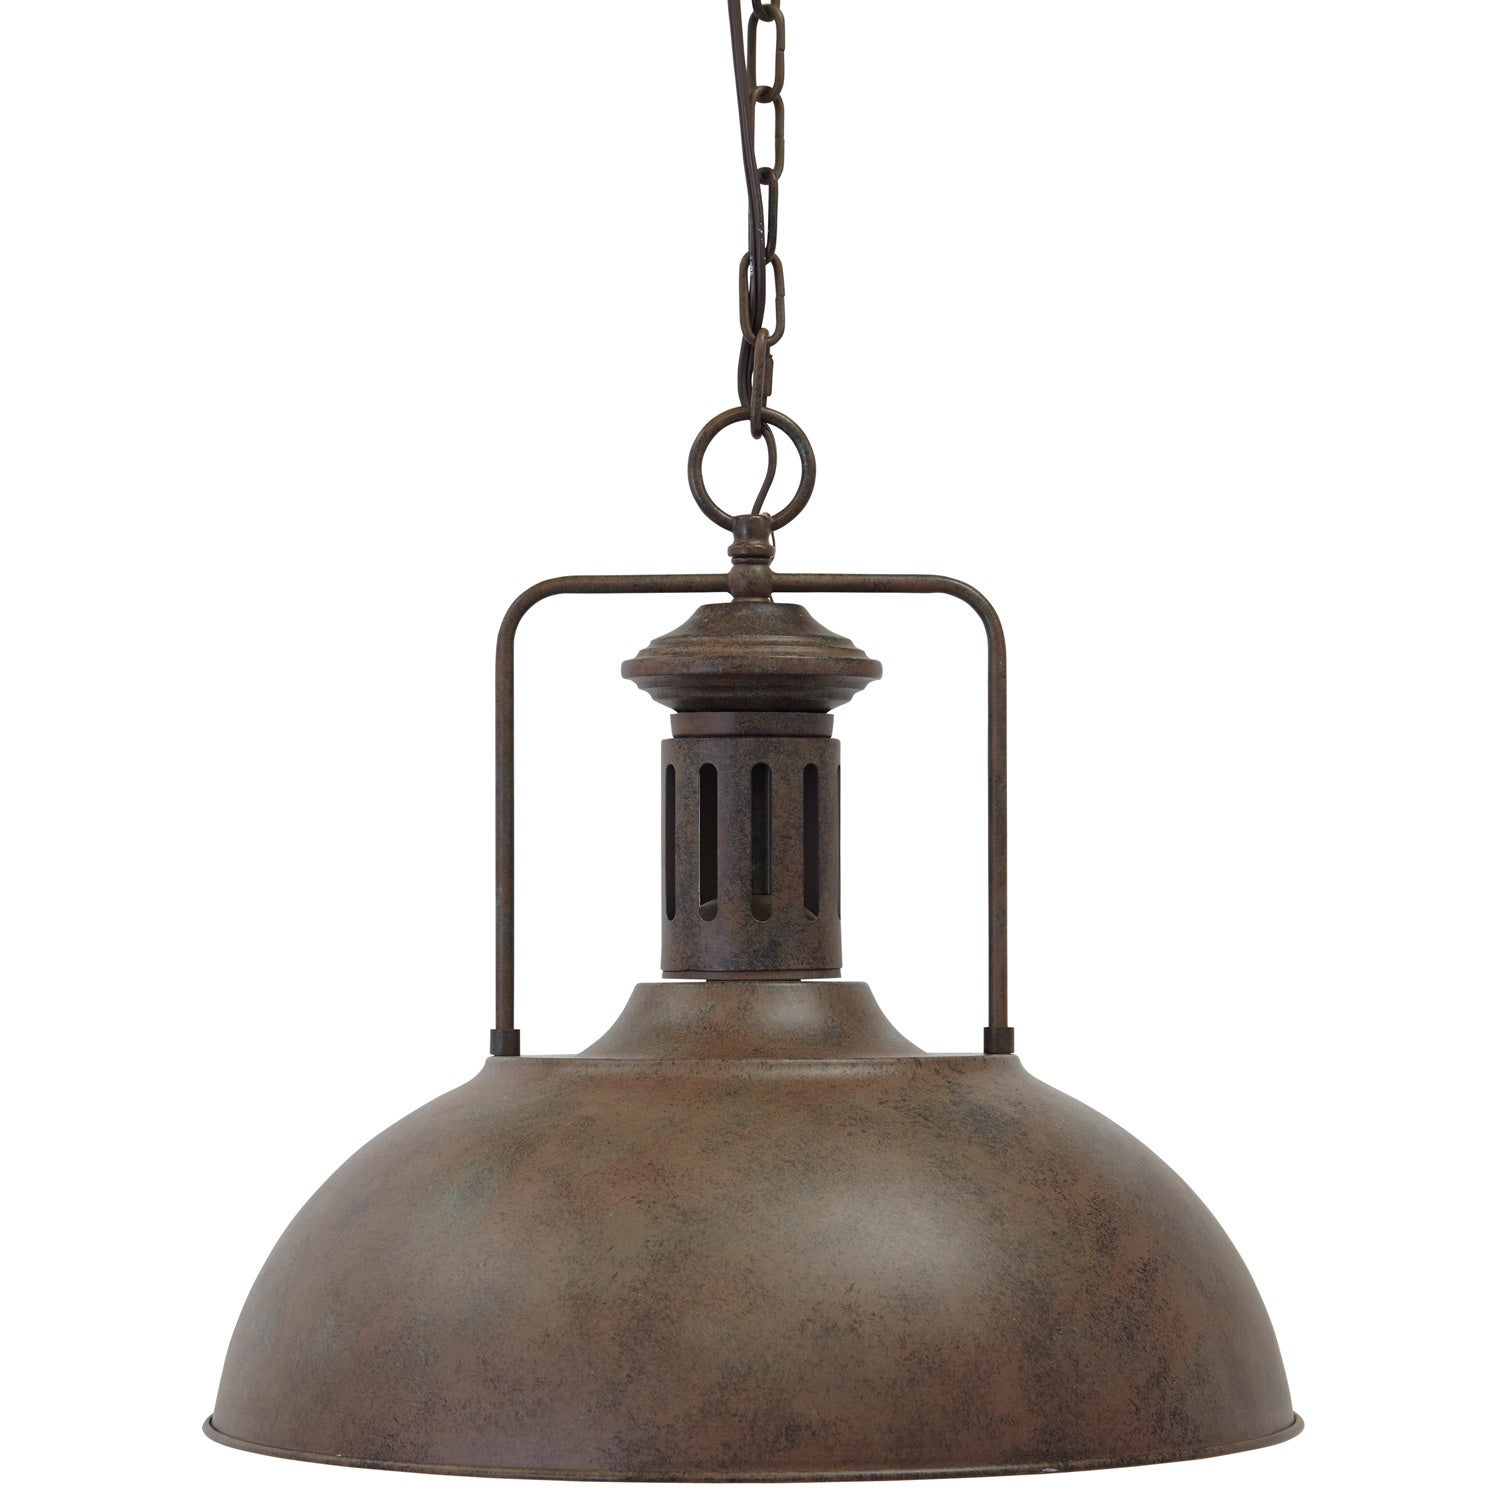 Signature design by ashley famke antique brown metal pendant light signature design by ashley famke antique brown metal pendant light free shipping today overstock 17234521 arubaitofo Images